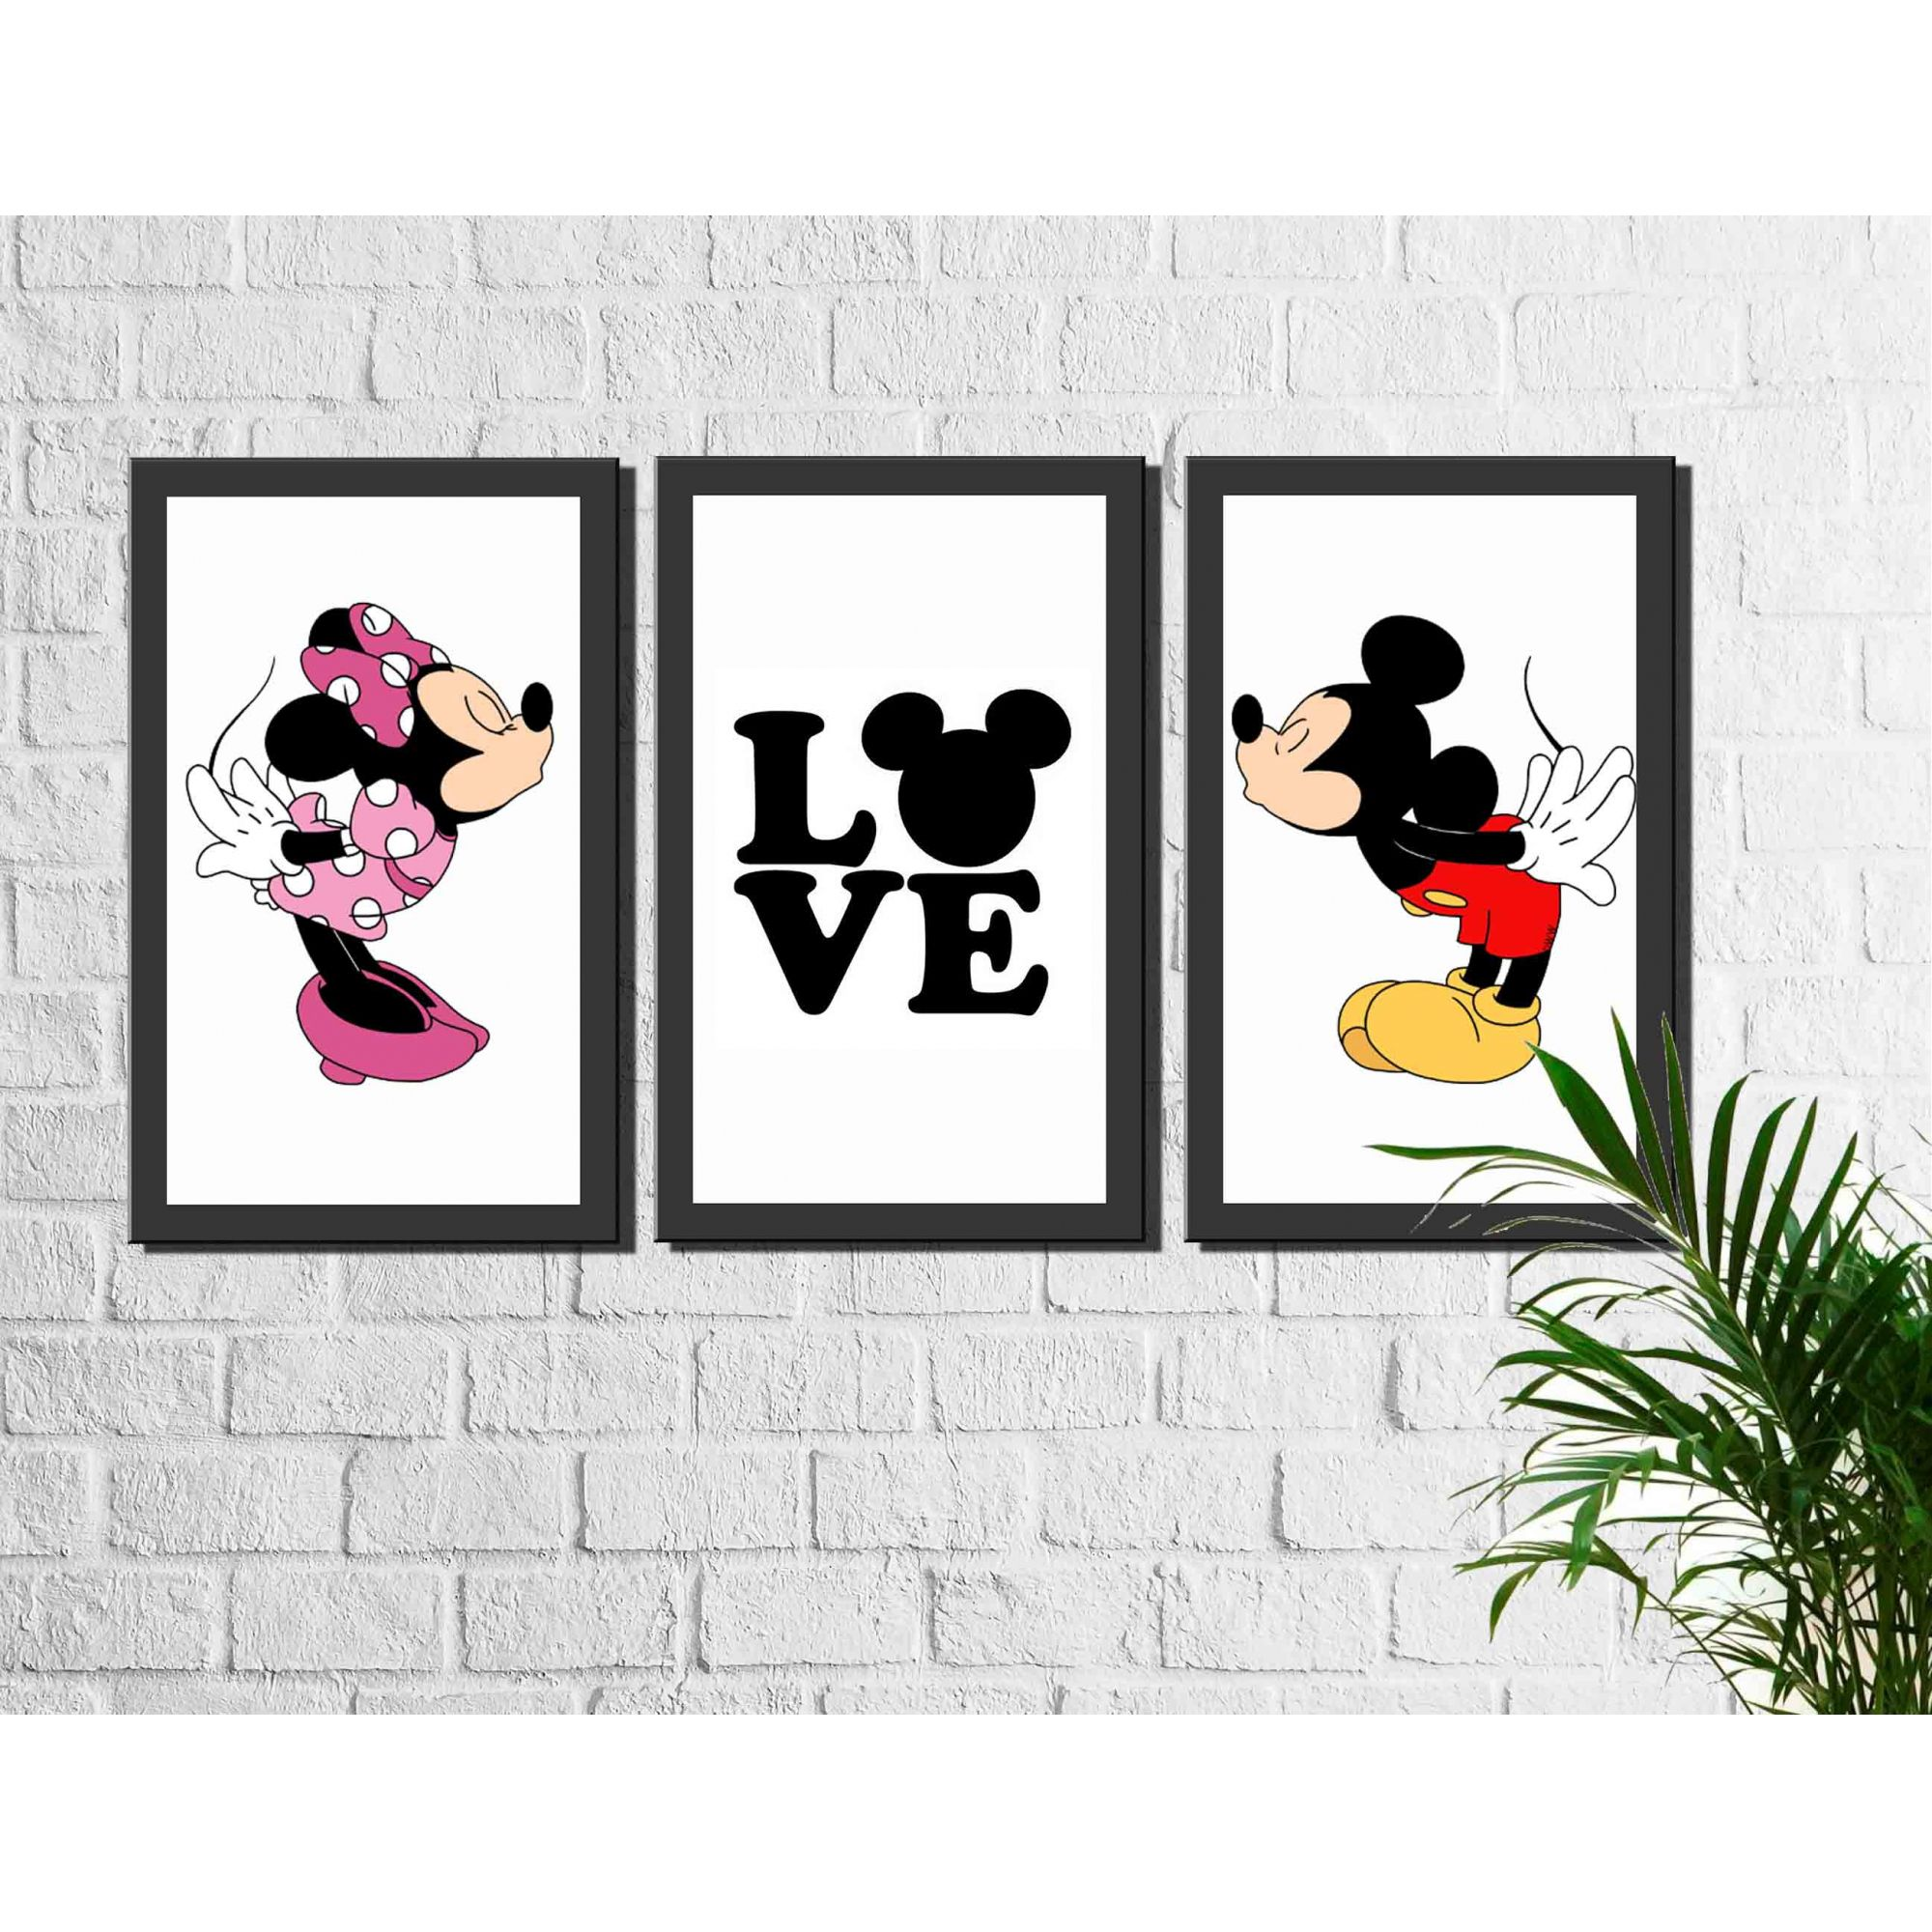 Kit 3 Quadros Decorativos Mickey e Minnie Love